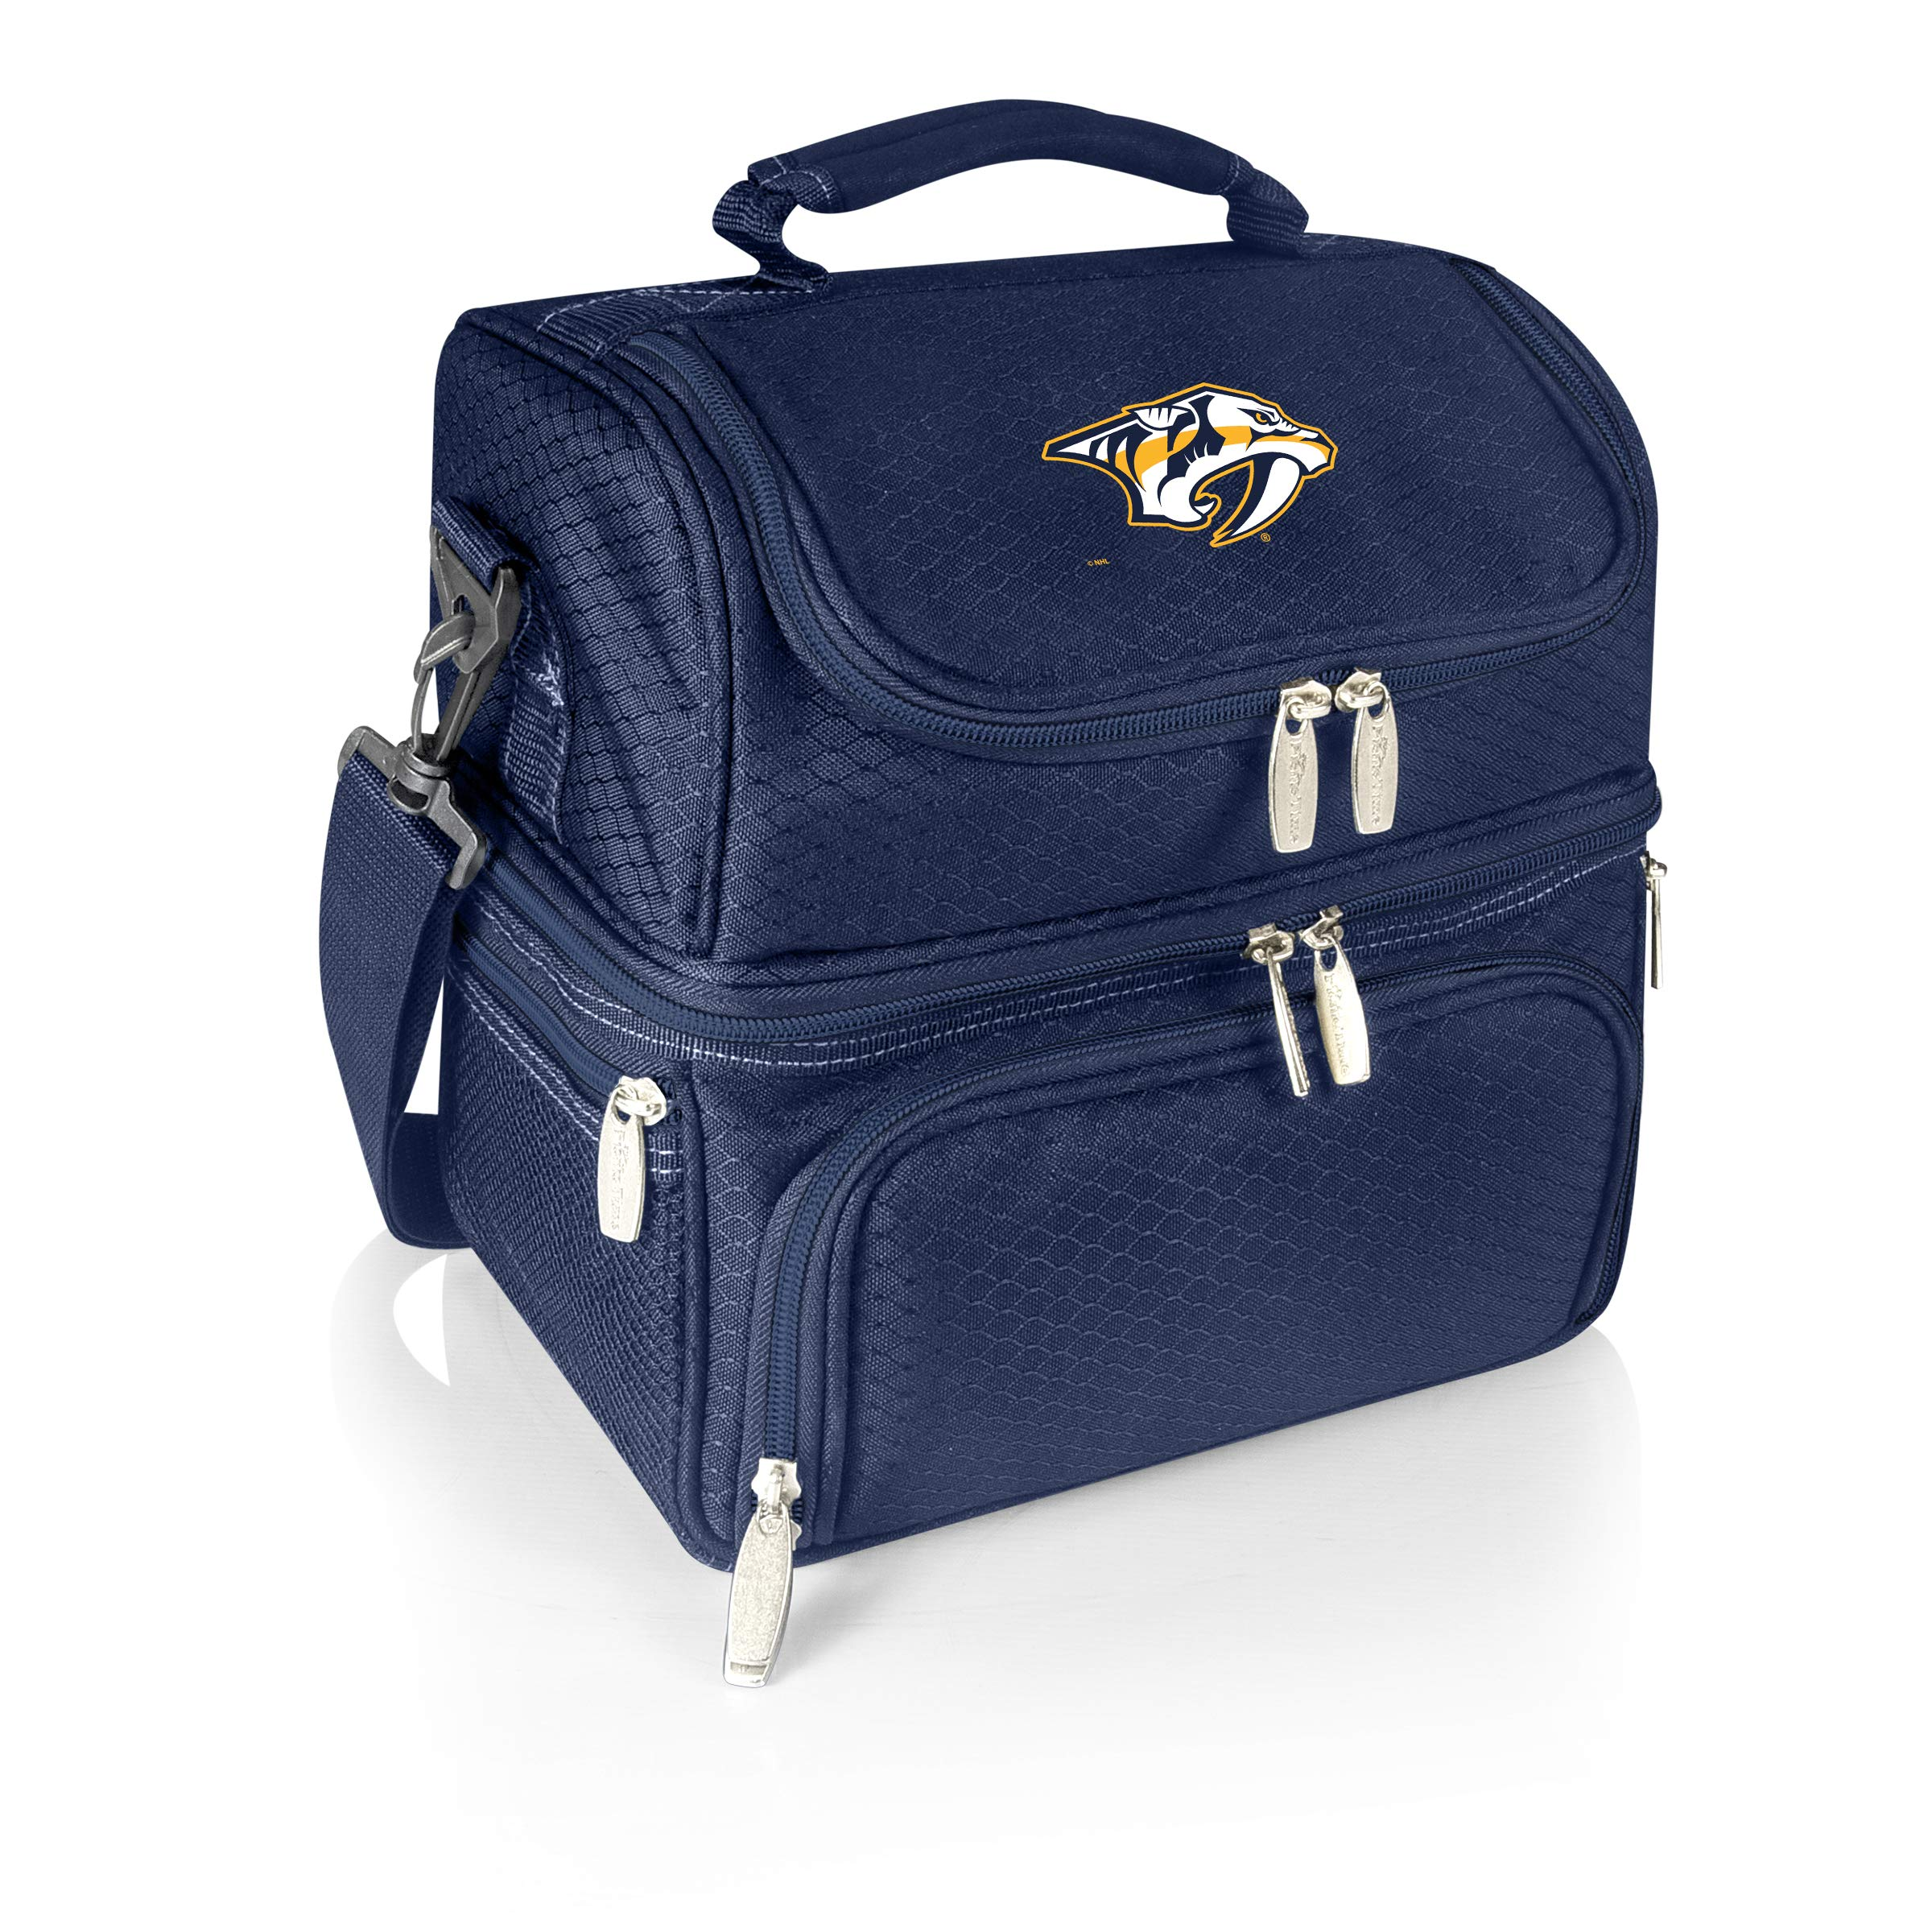 PICNIC TIME NHL Nashville Predators Pranzo Insulated Lunch Tote with Service for One, Navy